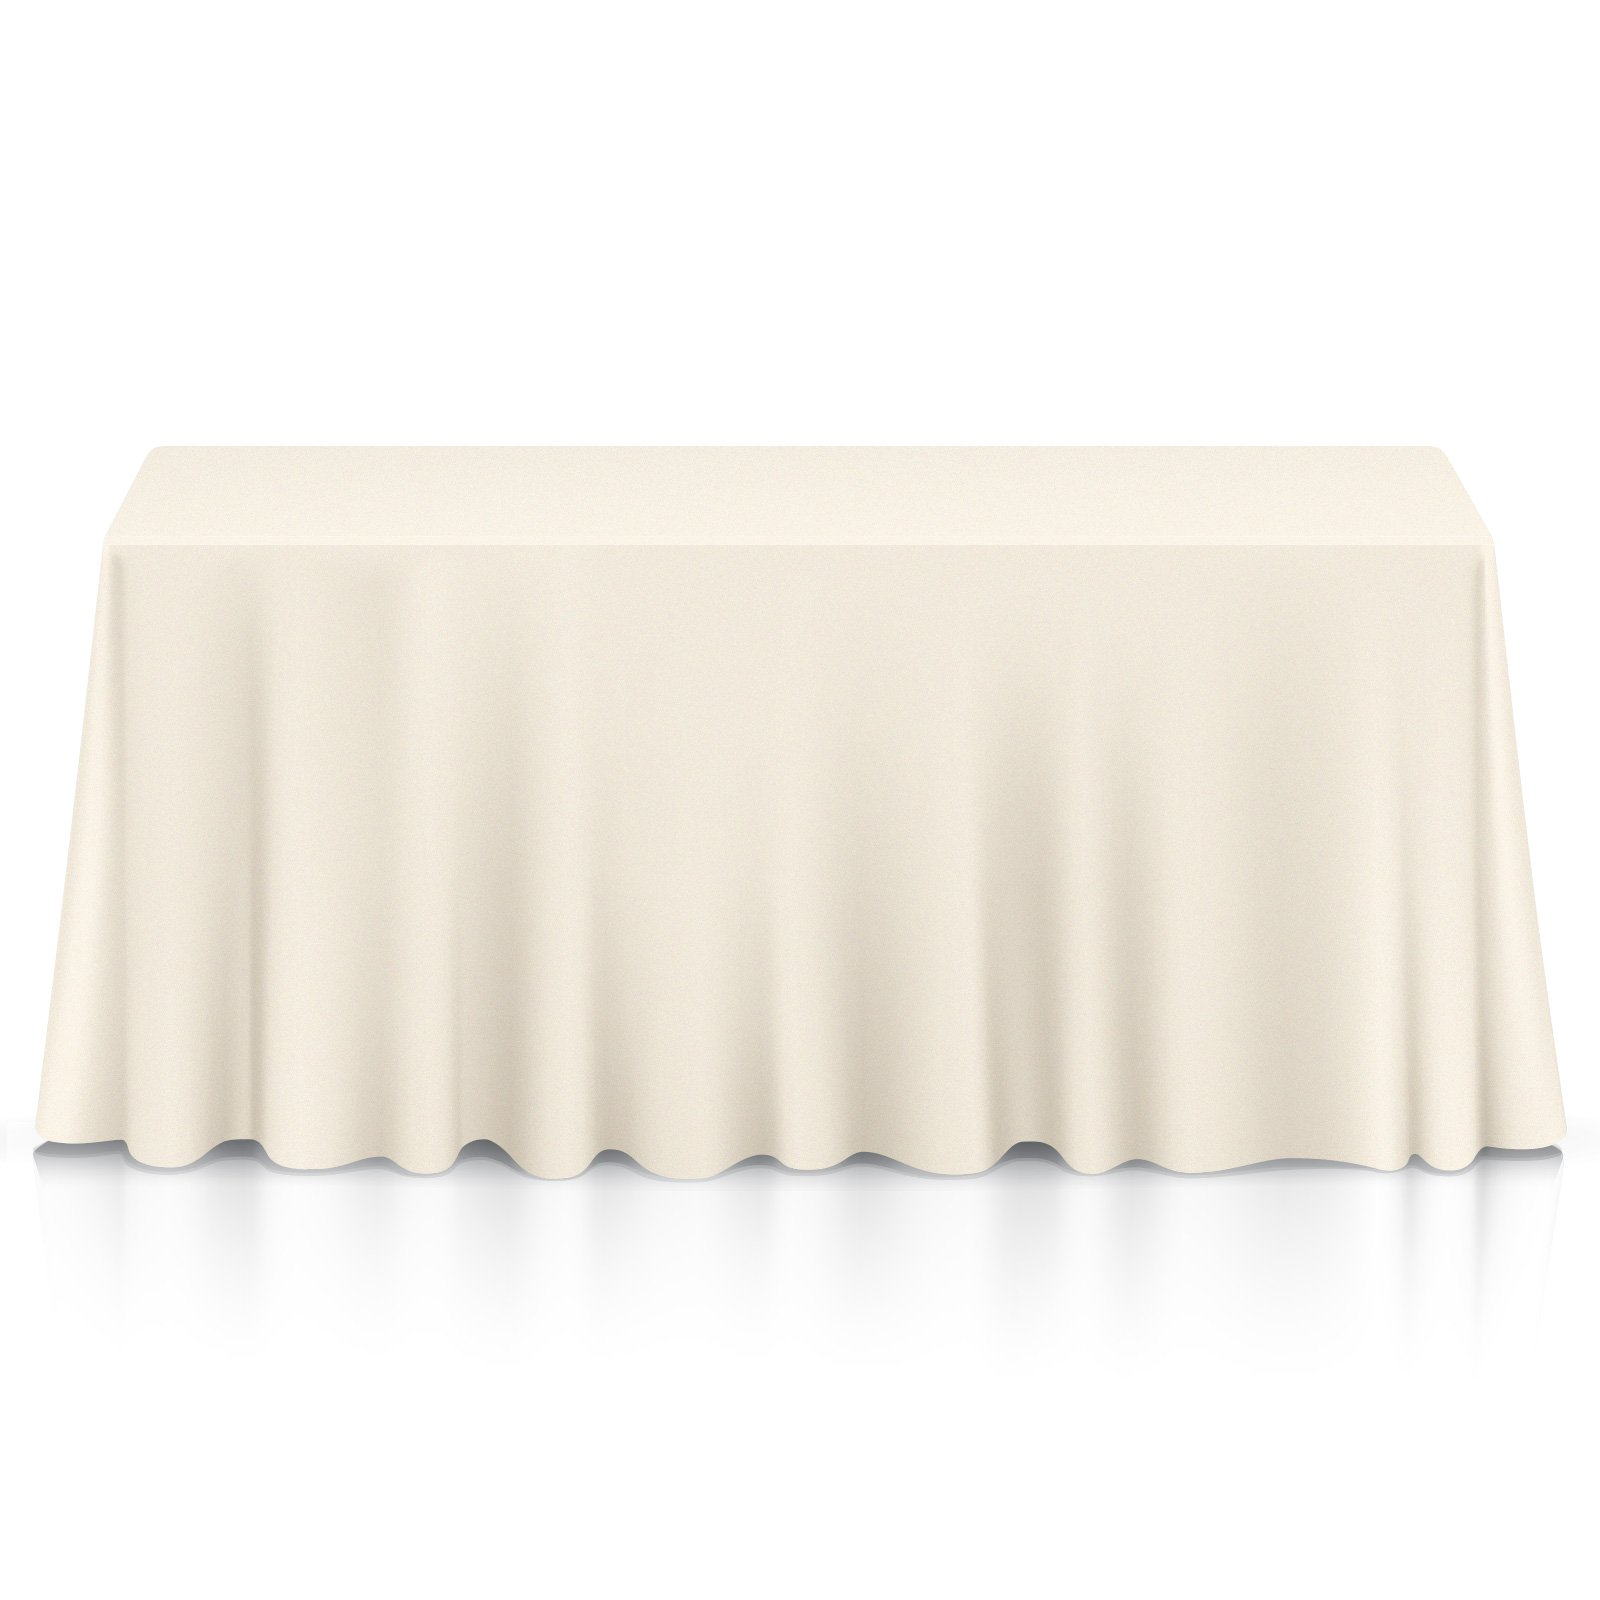 Lann's Linens - 20 Pack of 90'' x 156'' Rectangular Ivory Polyester Tablecloth Covers for Weddings, Banquets, or Restaurants